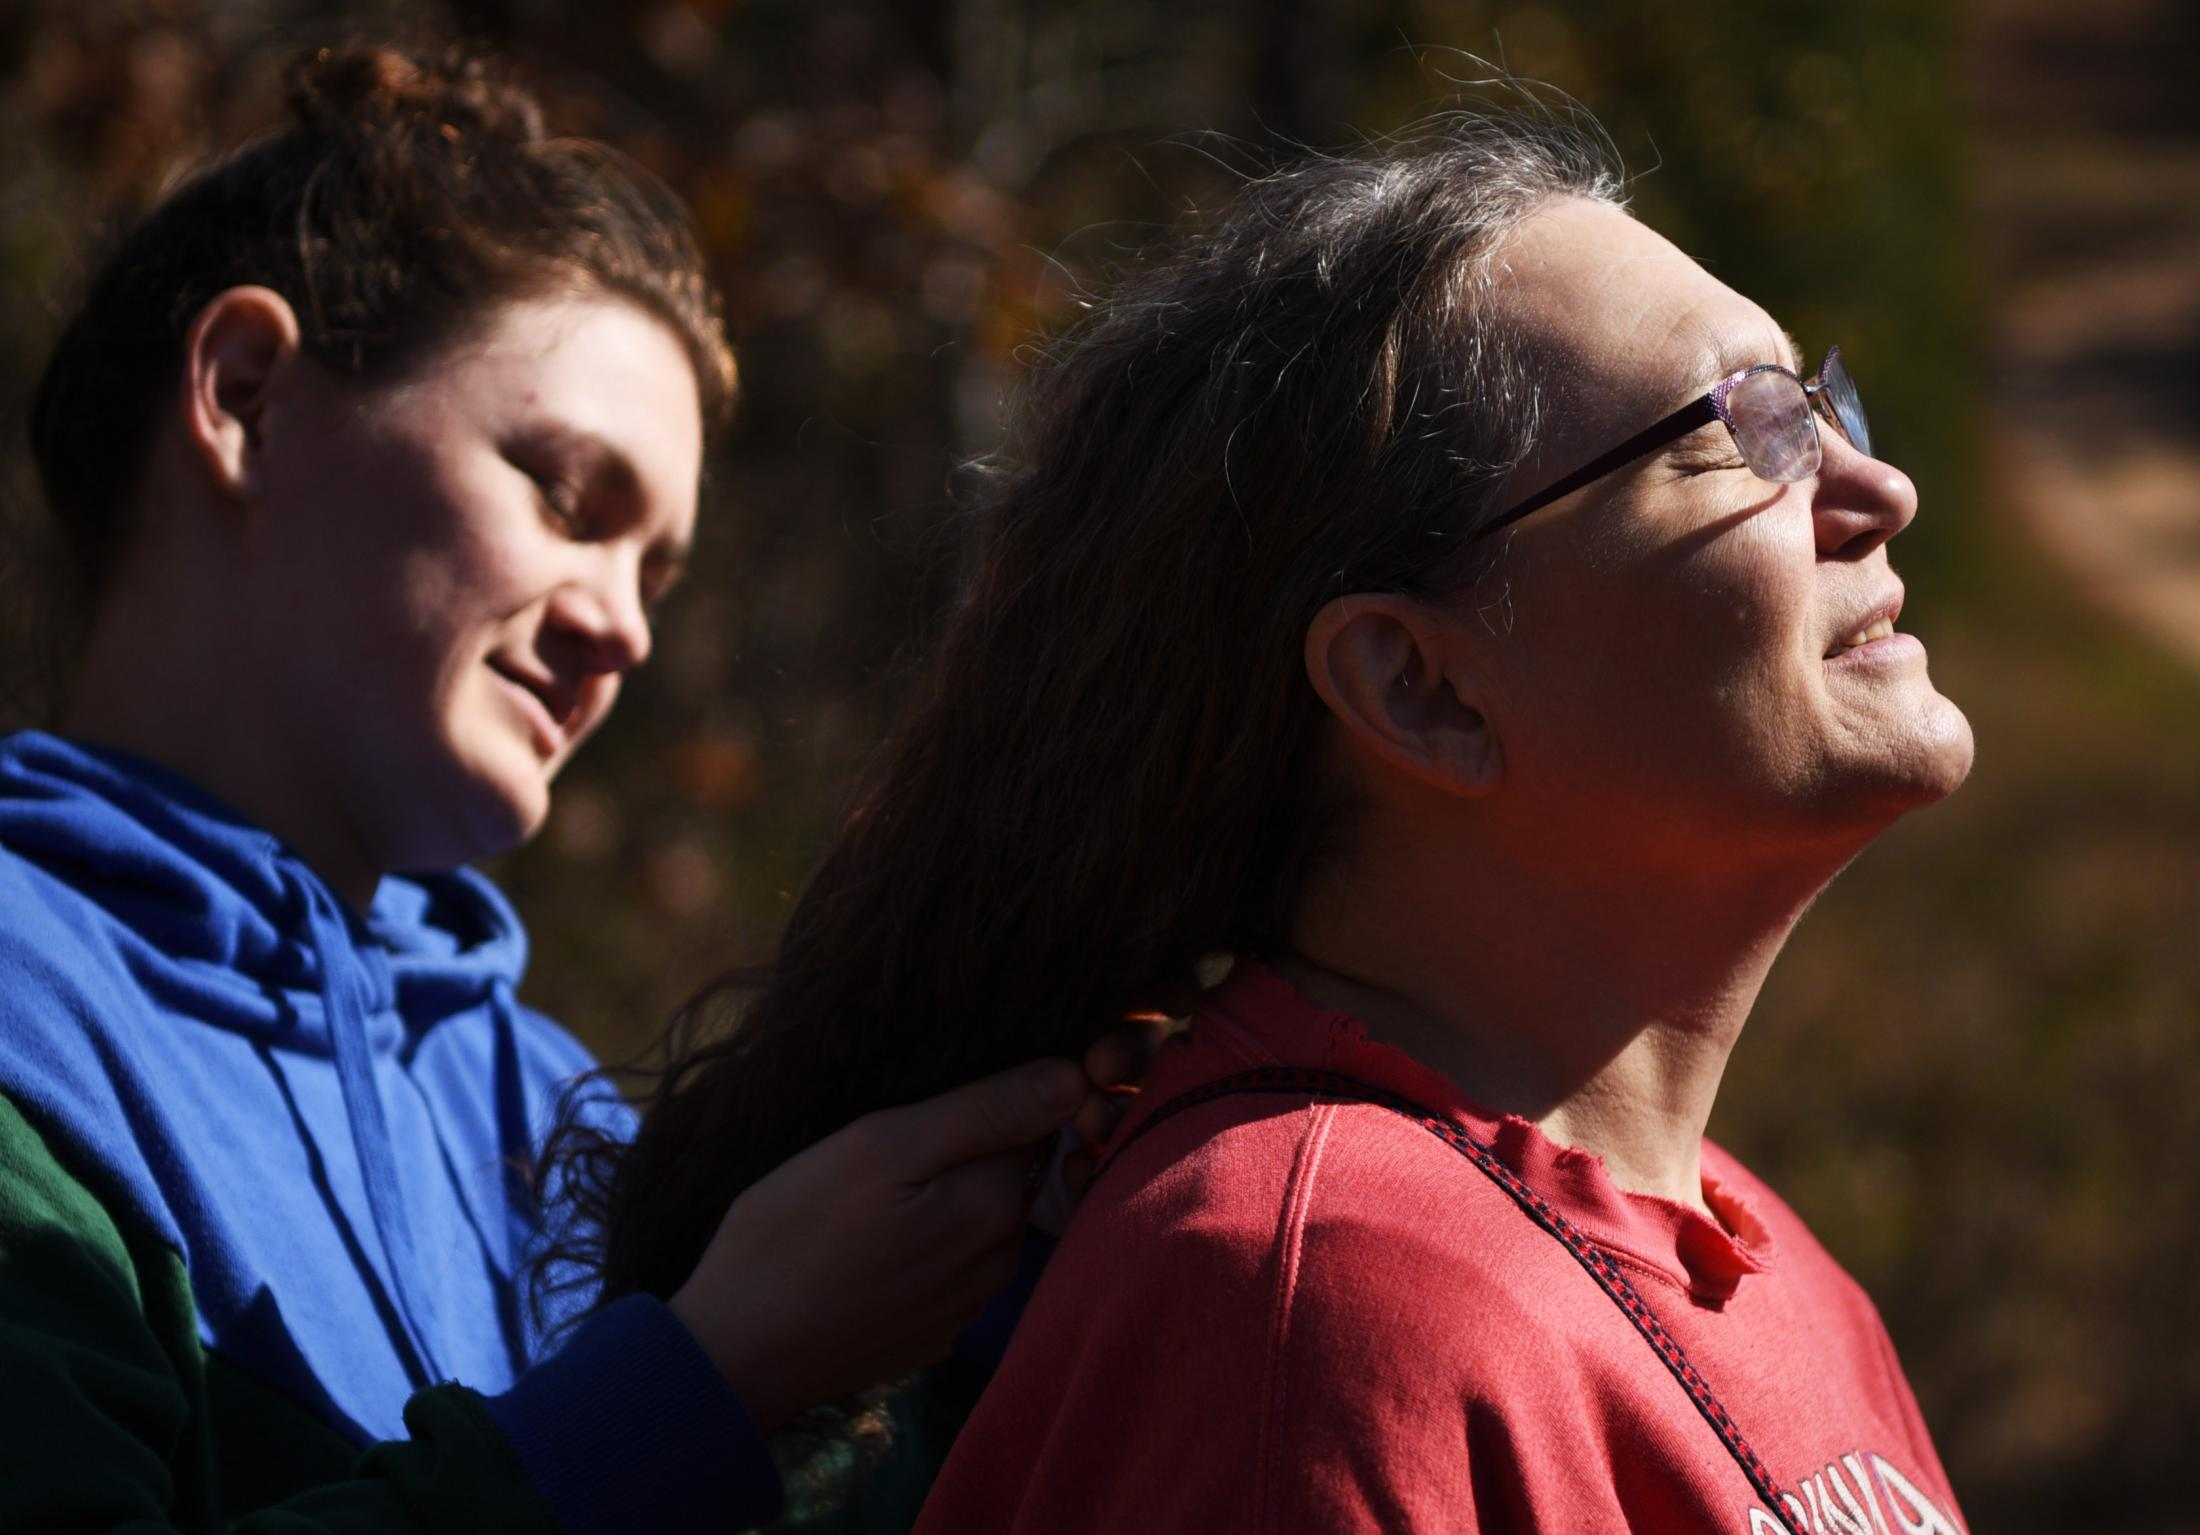 """Margaret Waddell soaks in the sun and warmth as Hannah Satterwhite pulls back her mother's hair on their land at Crystal Lake on Nov. 3, 2019. The property has been in Waddell's family for 5 generations. """"This is the first place I have ever truly felt at peace with myself,"""" Waddell said. """"Staying connected to nature and my ancestors is what makes me feel whole."""""""